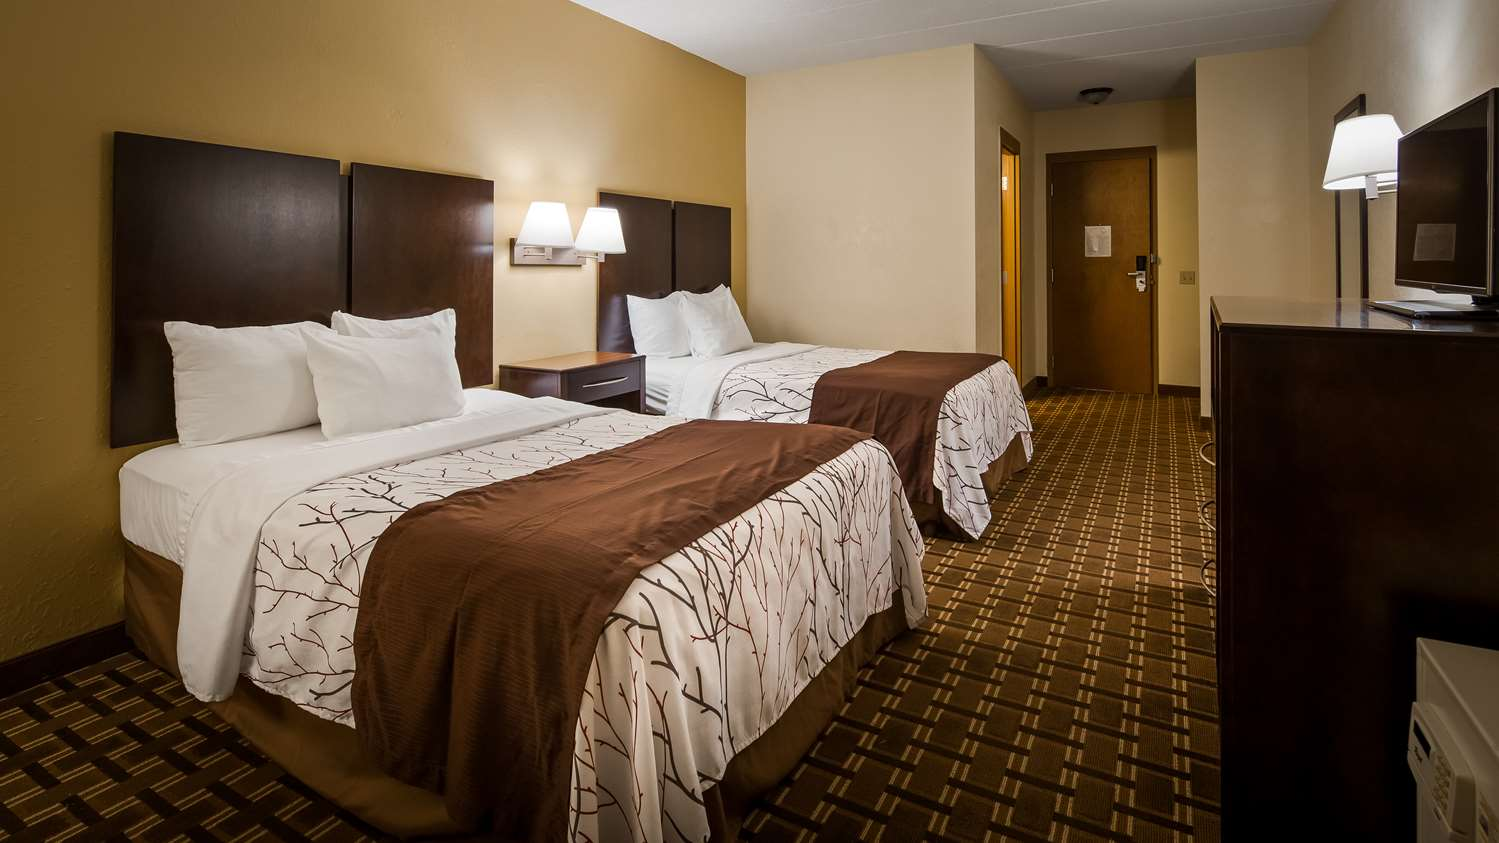 Port Clinton Ohio Hotels With Jacuzzi